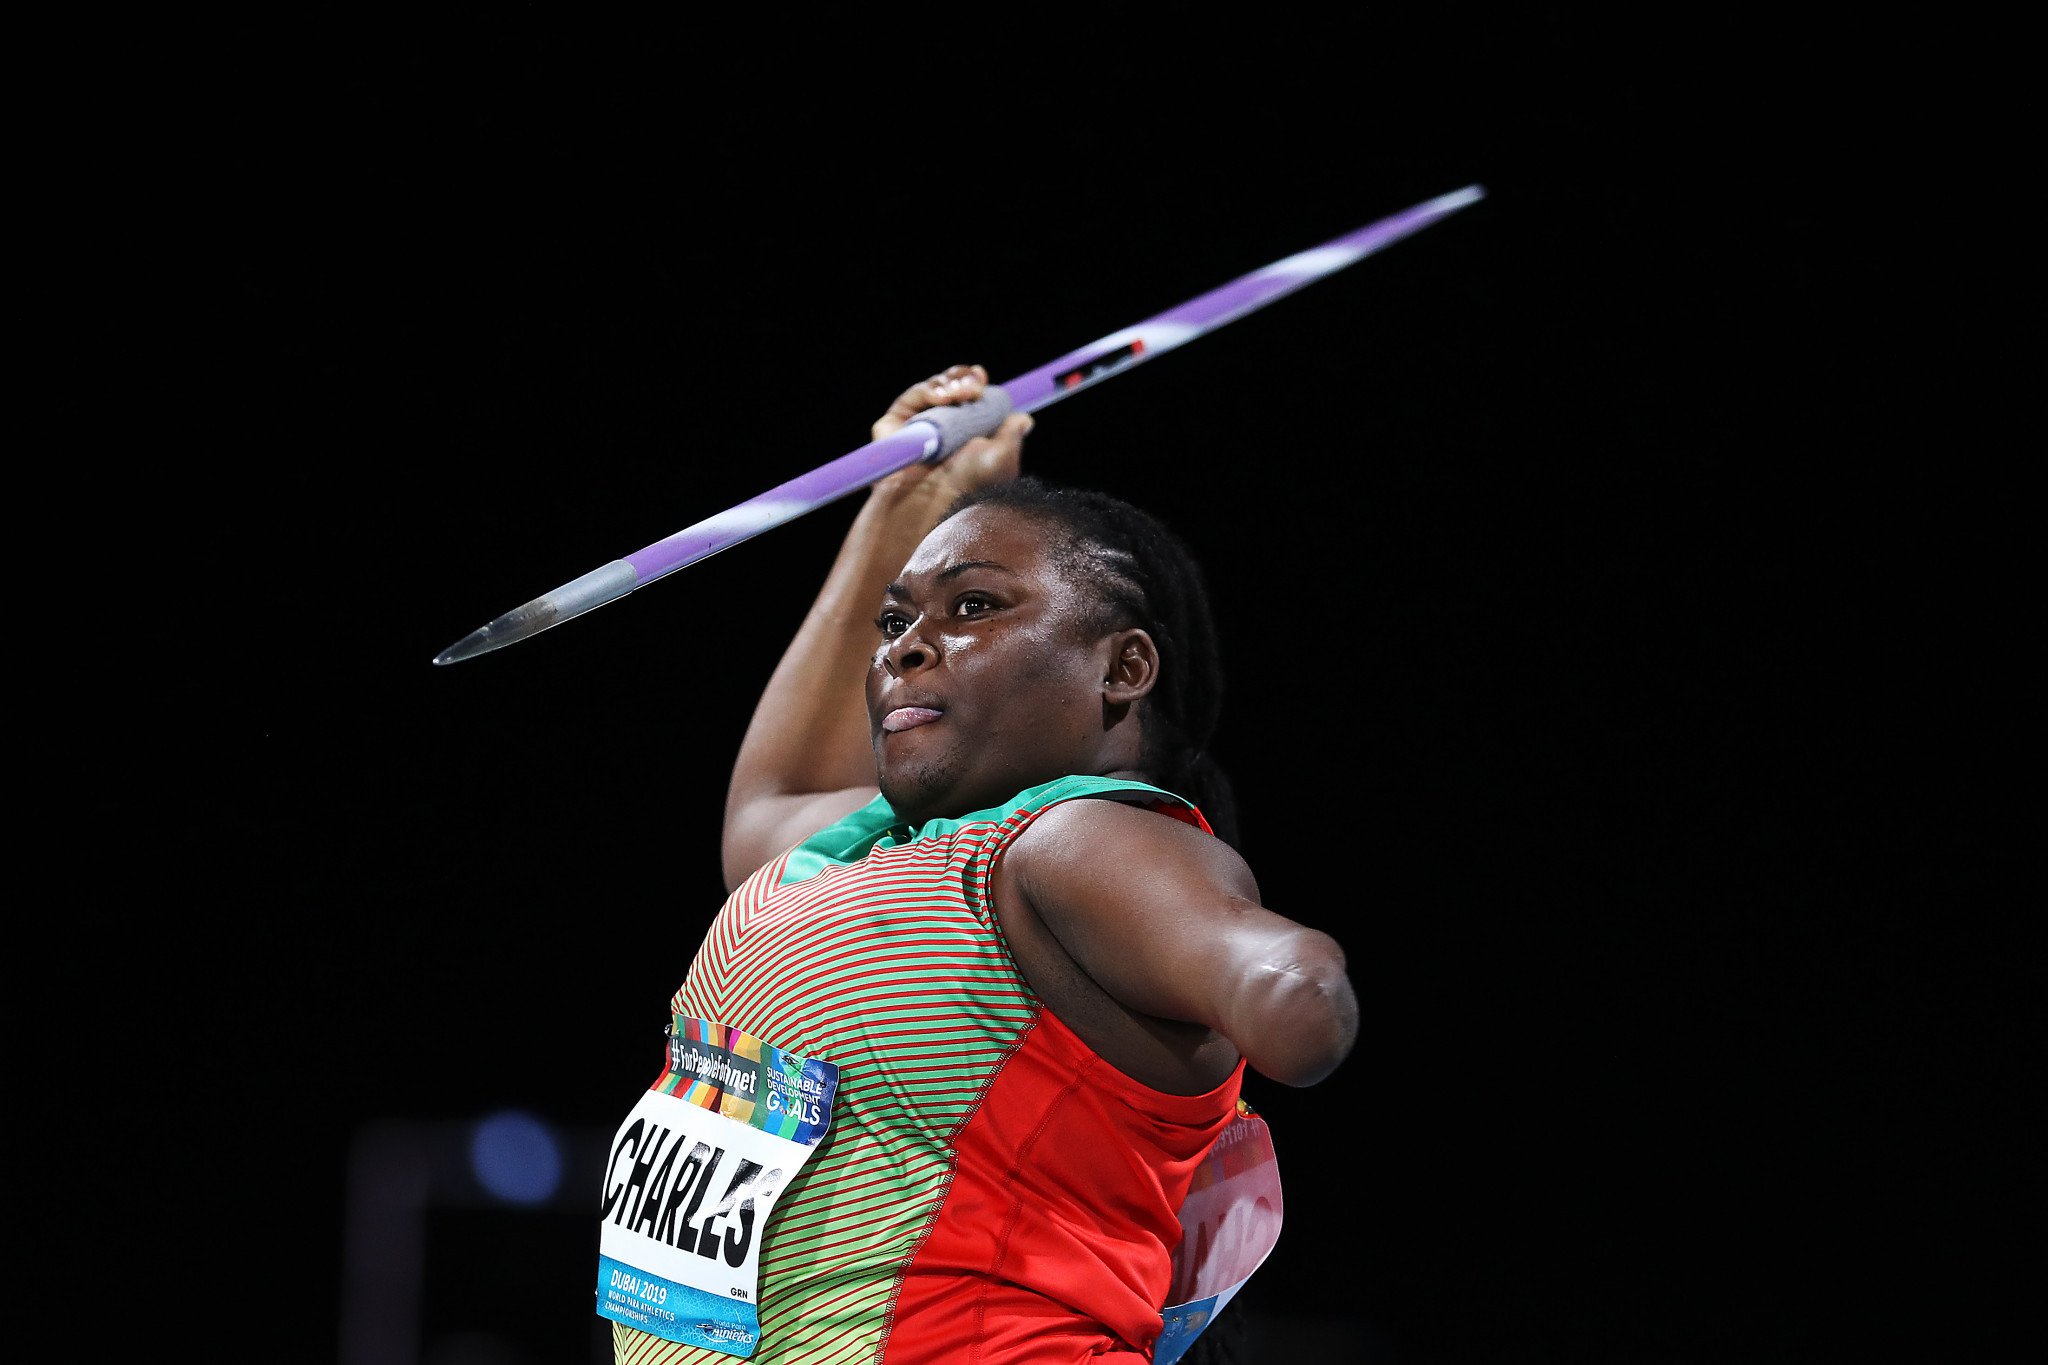 Charles aims to change perceptions and become Grenada's first Paralympian